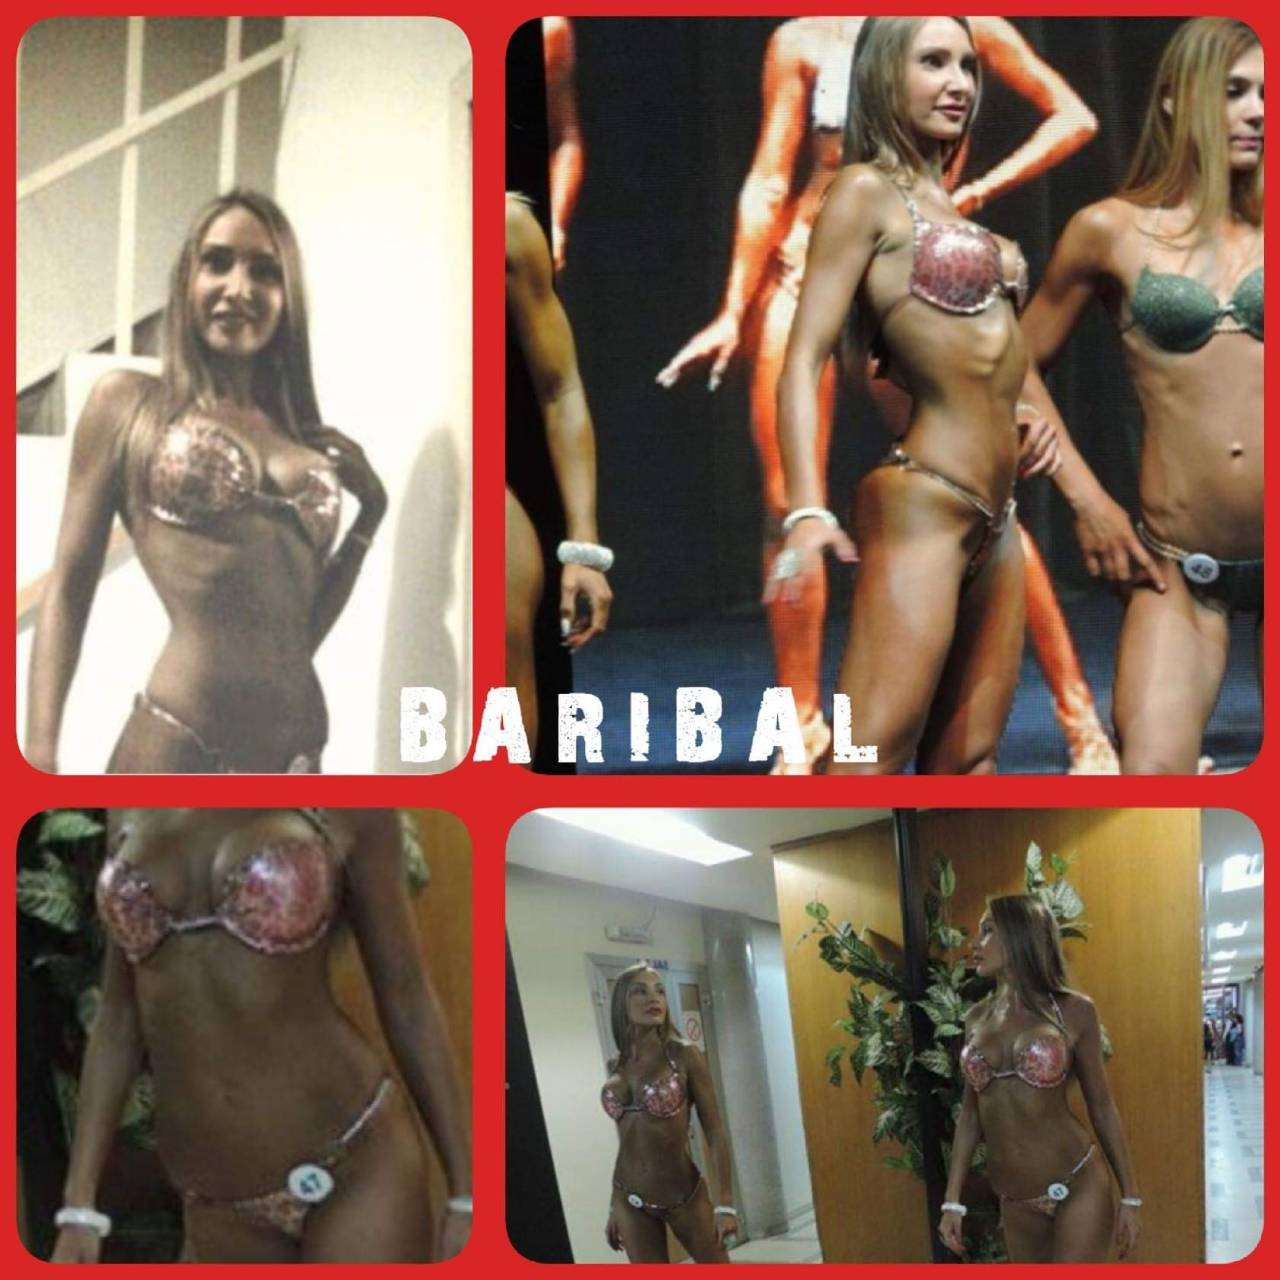 Baribal fitness & dance club